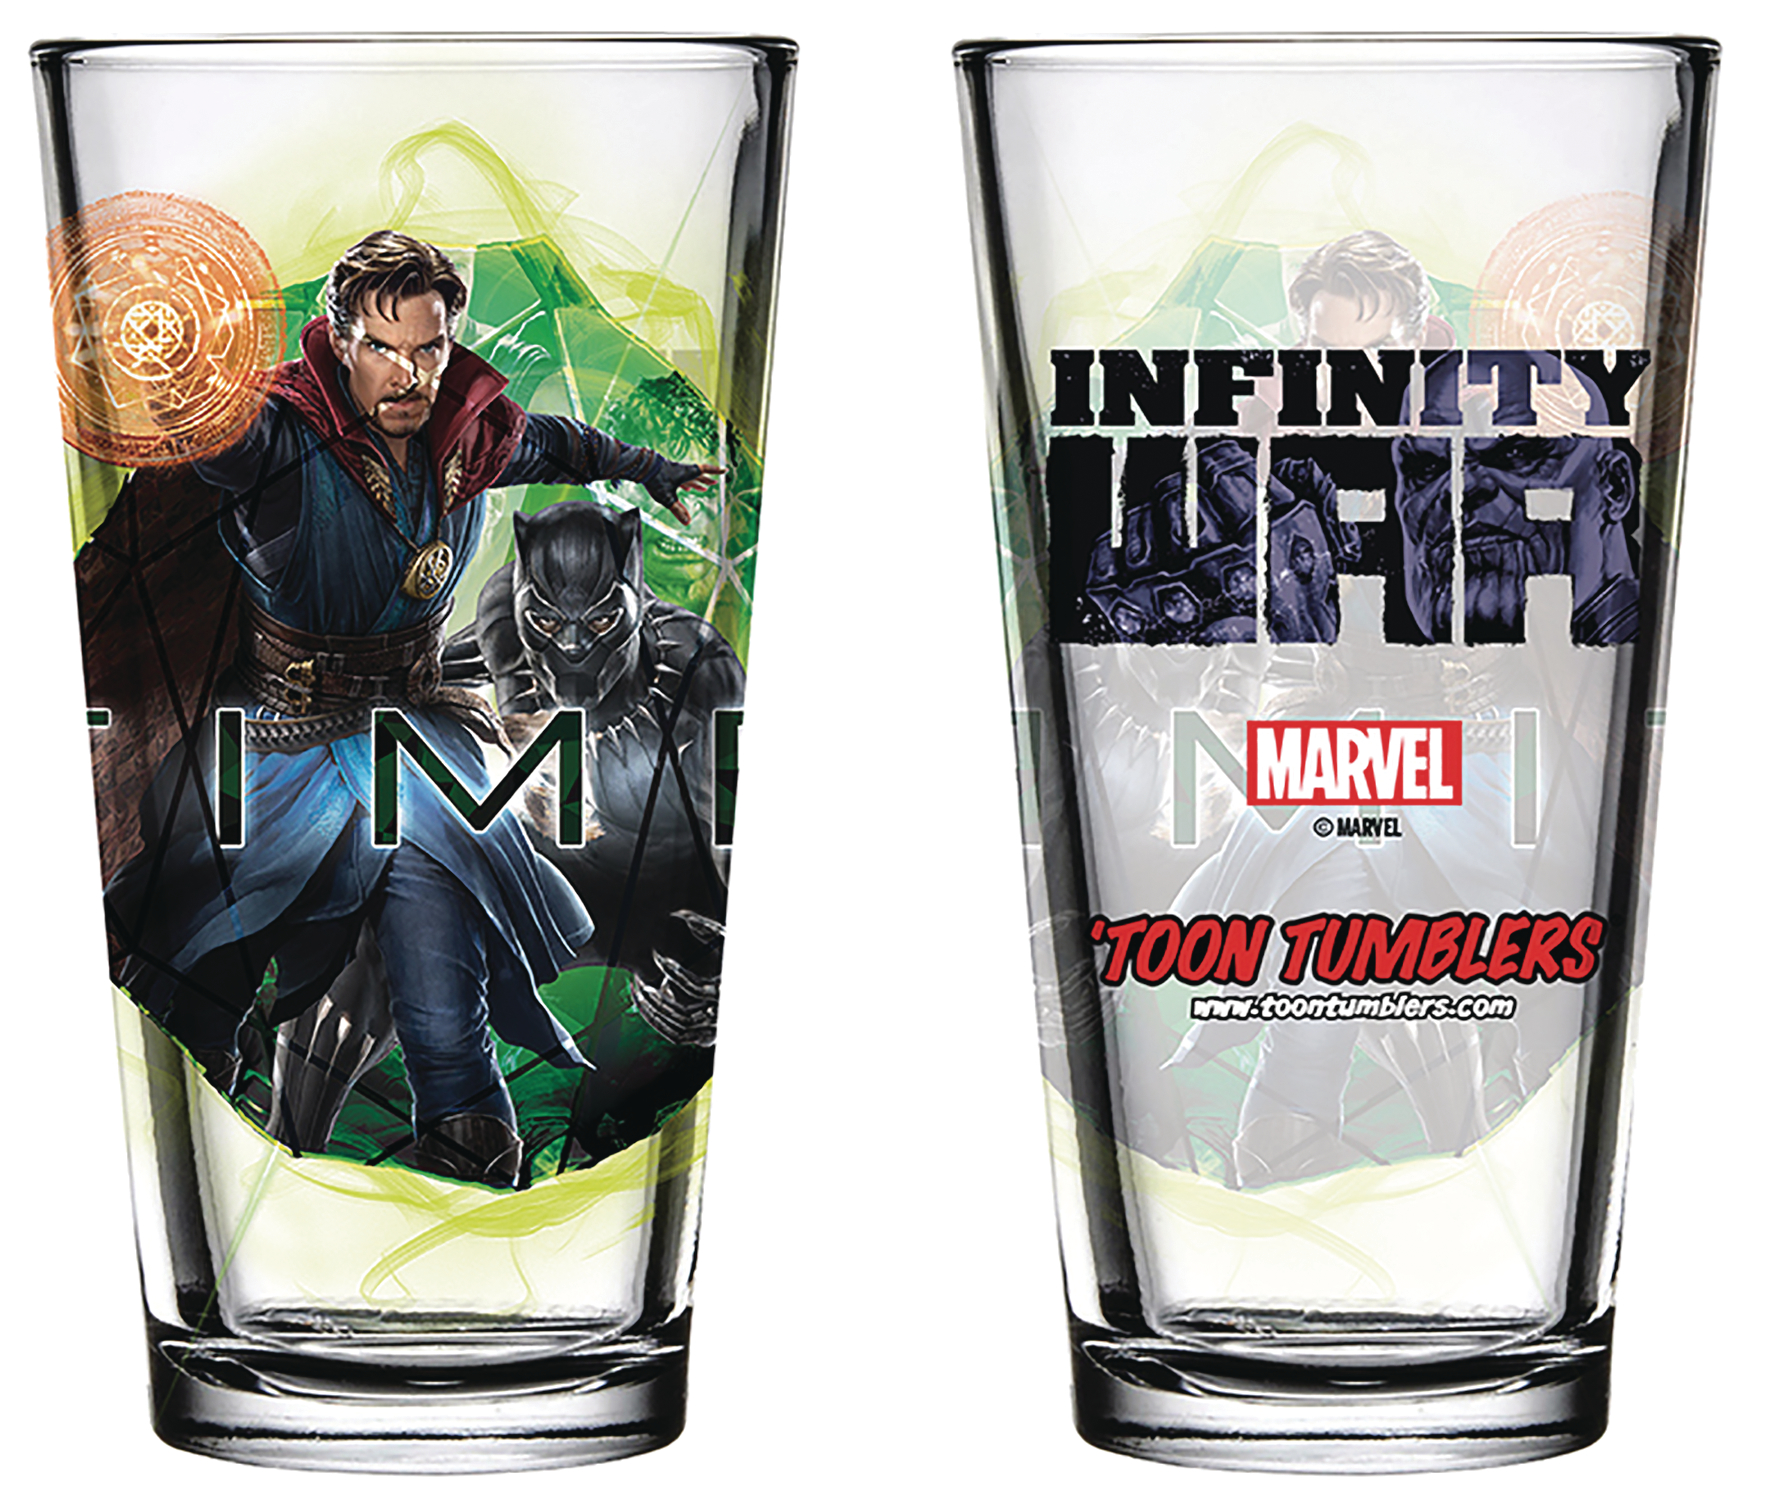 AVENGERS IW BLACK PANTHER DOCTOR STRANGE PINT GLASS